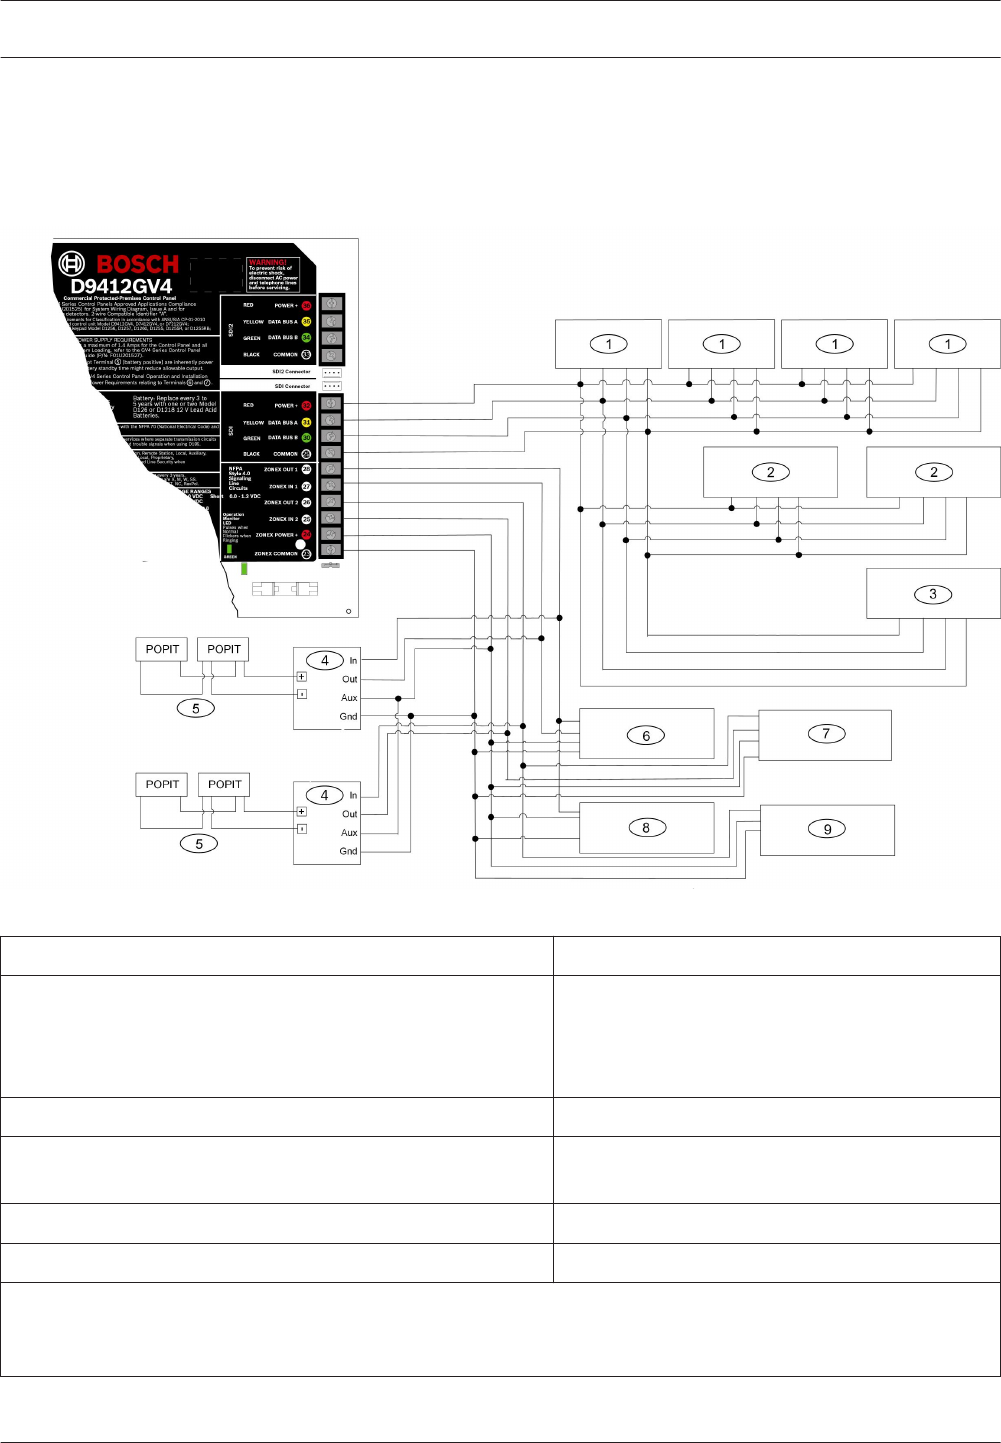 page 14 of bosch appliances video gaming accessories d9412gv4 user, Wiring diagram